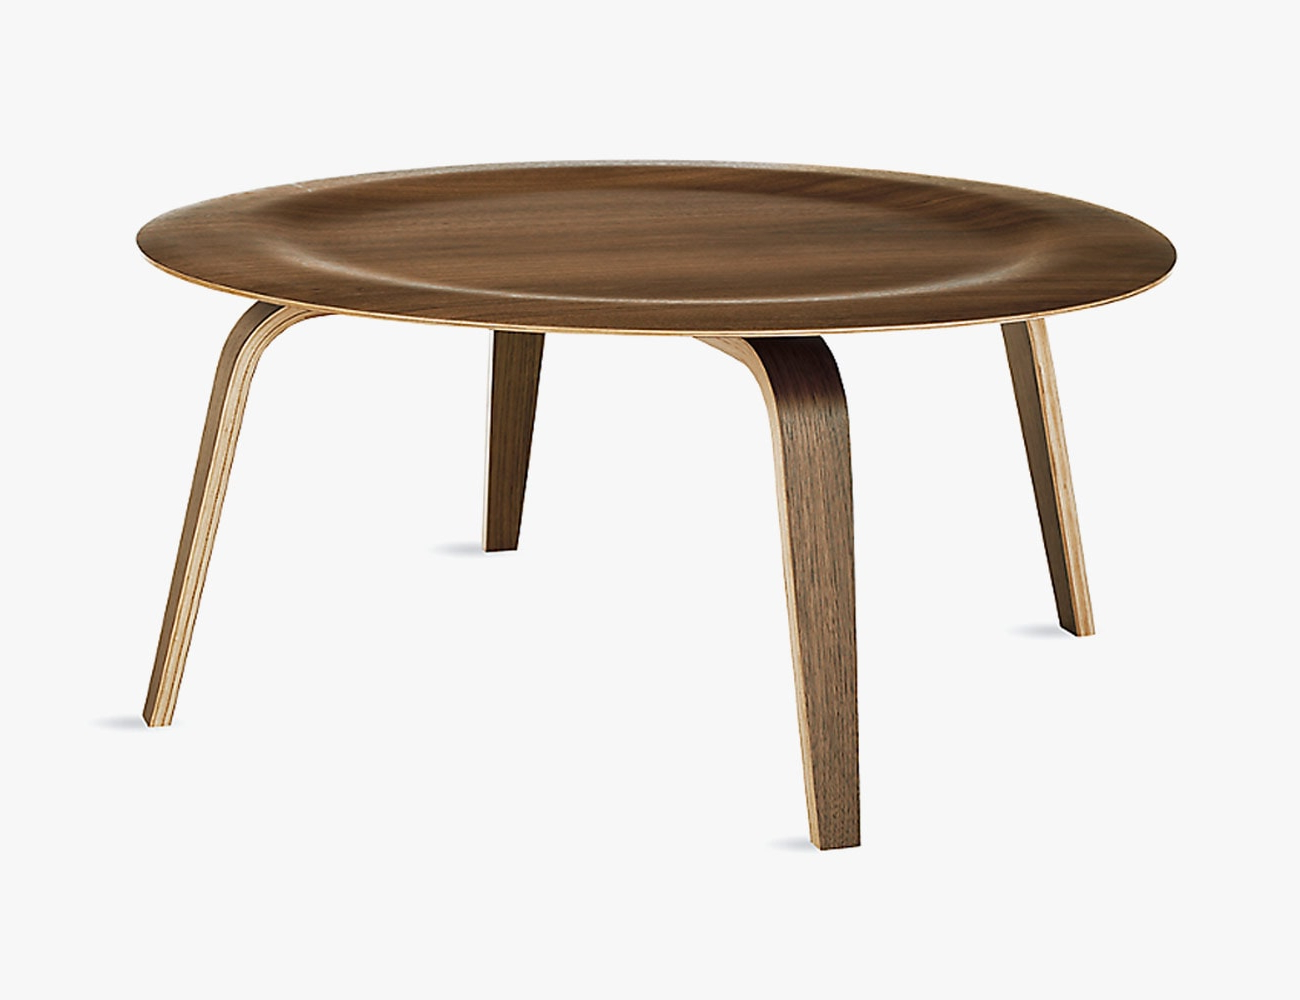 Shroom Large Coffee Tables Pertaining To Most Recent The Best Coffee Tables For Every Budget And Style (View 14 of 20)